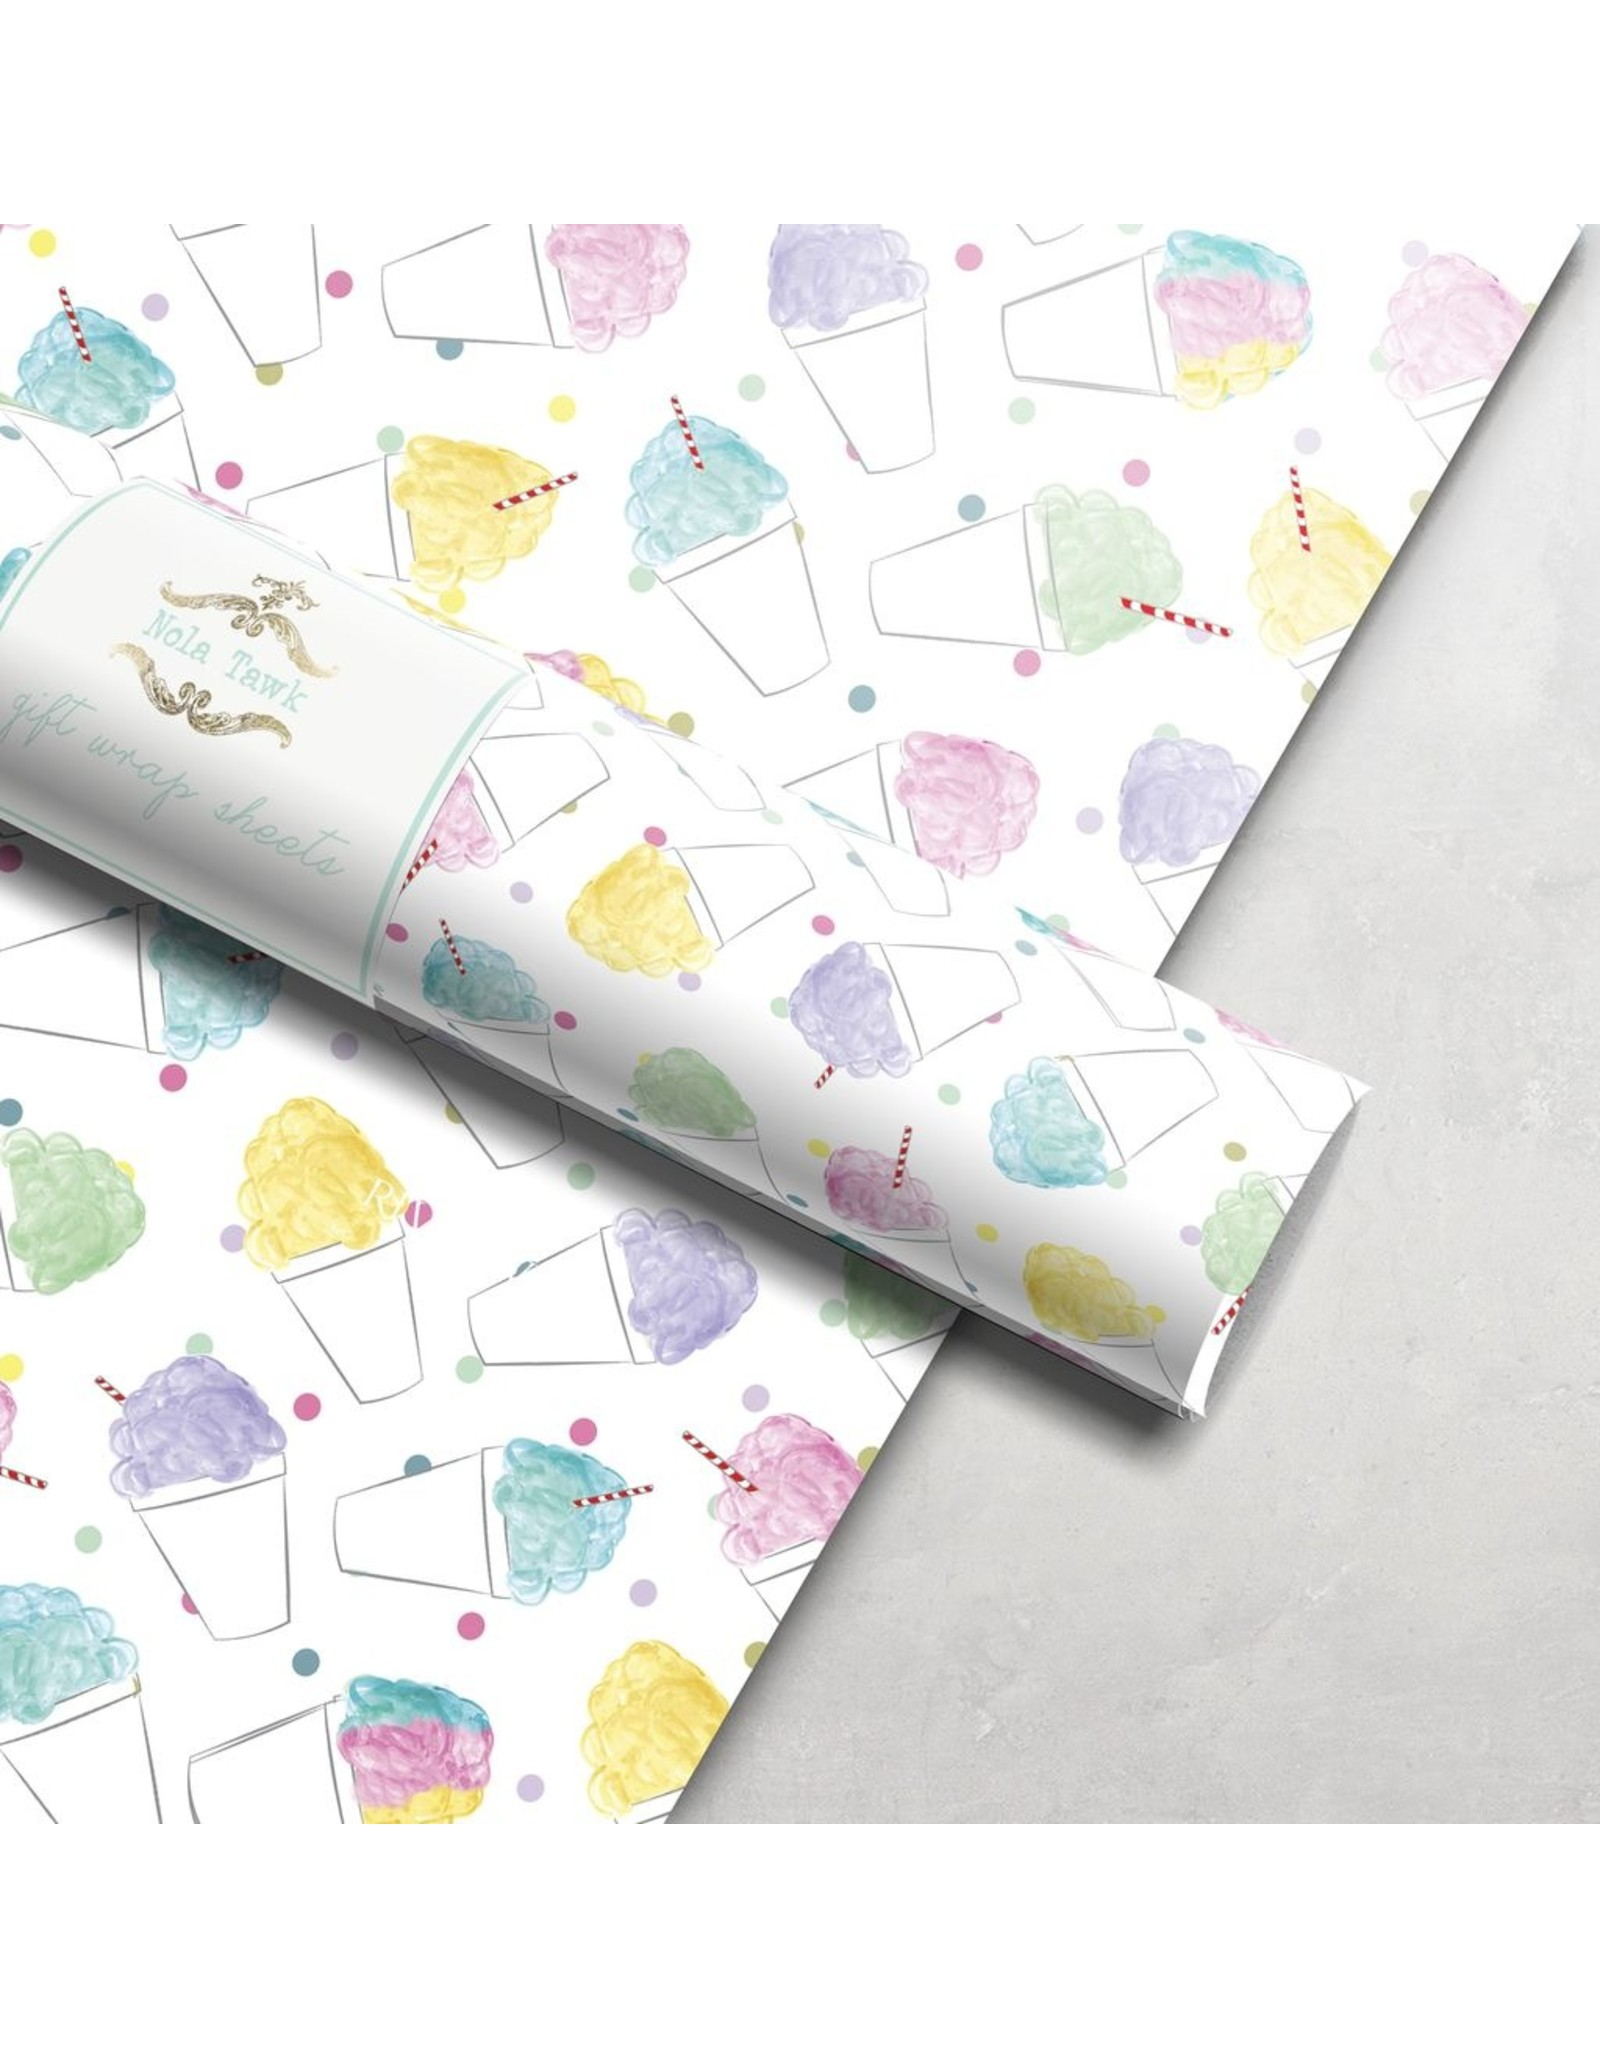 Nola Tawk Snoball Wrapping Paper